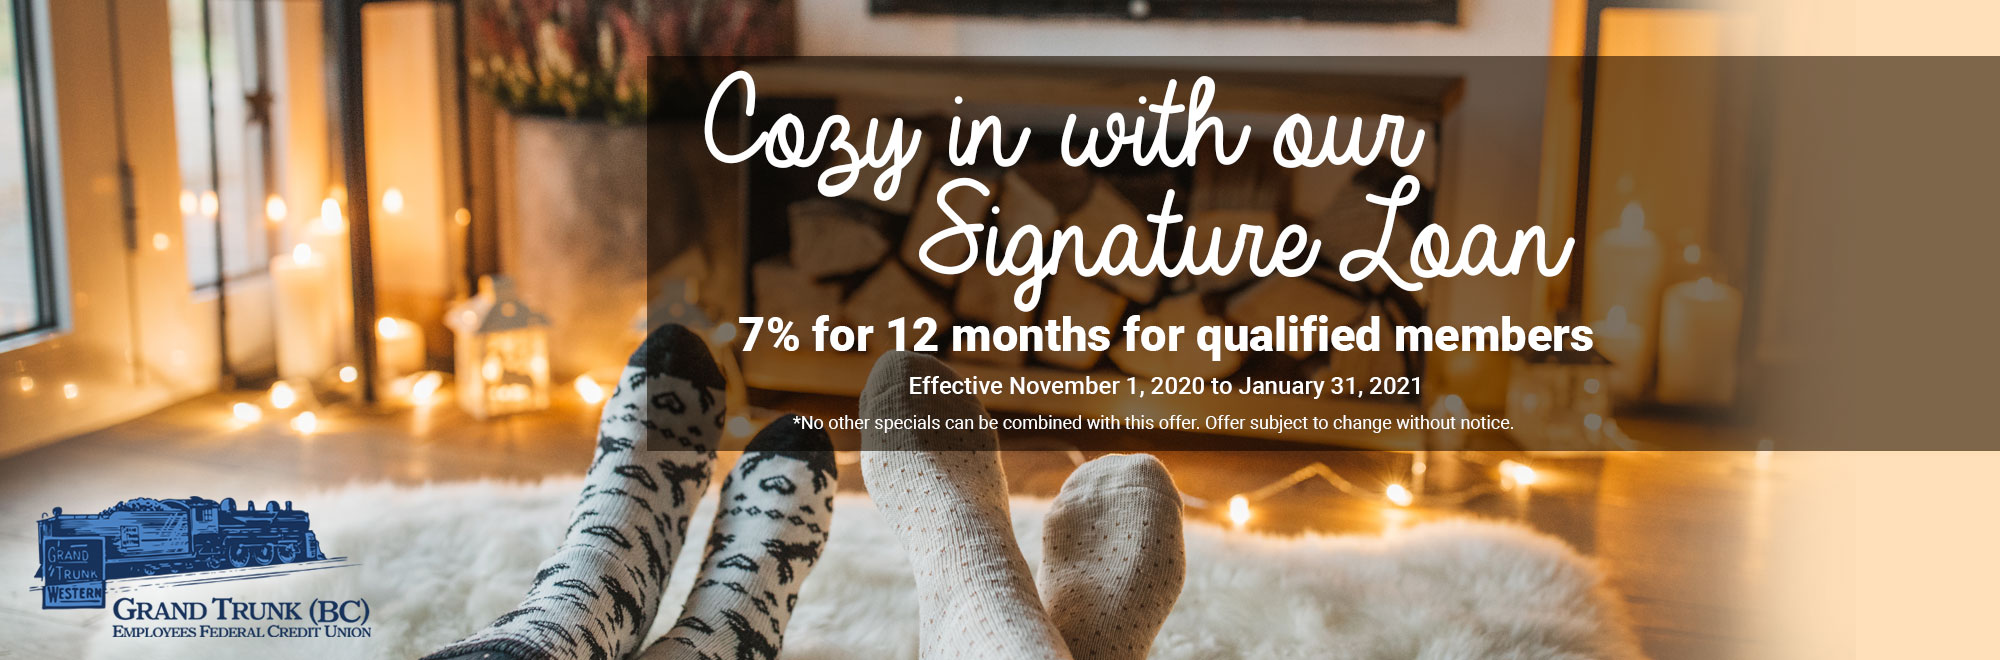 Signature Loan 7% for 12 months (qualified members)